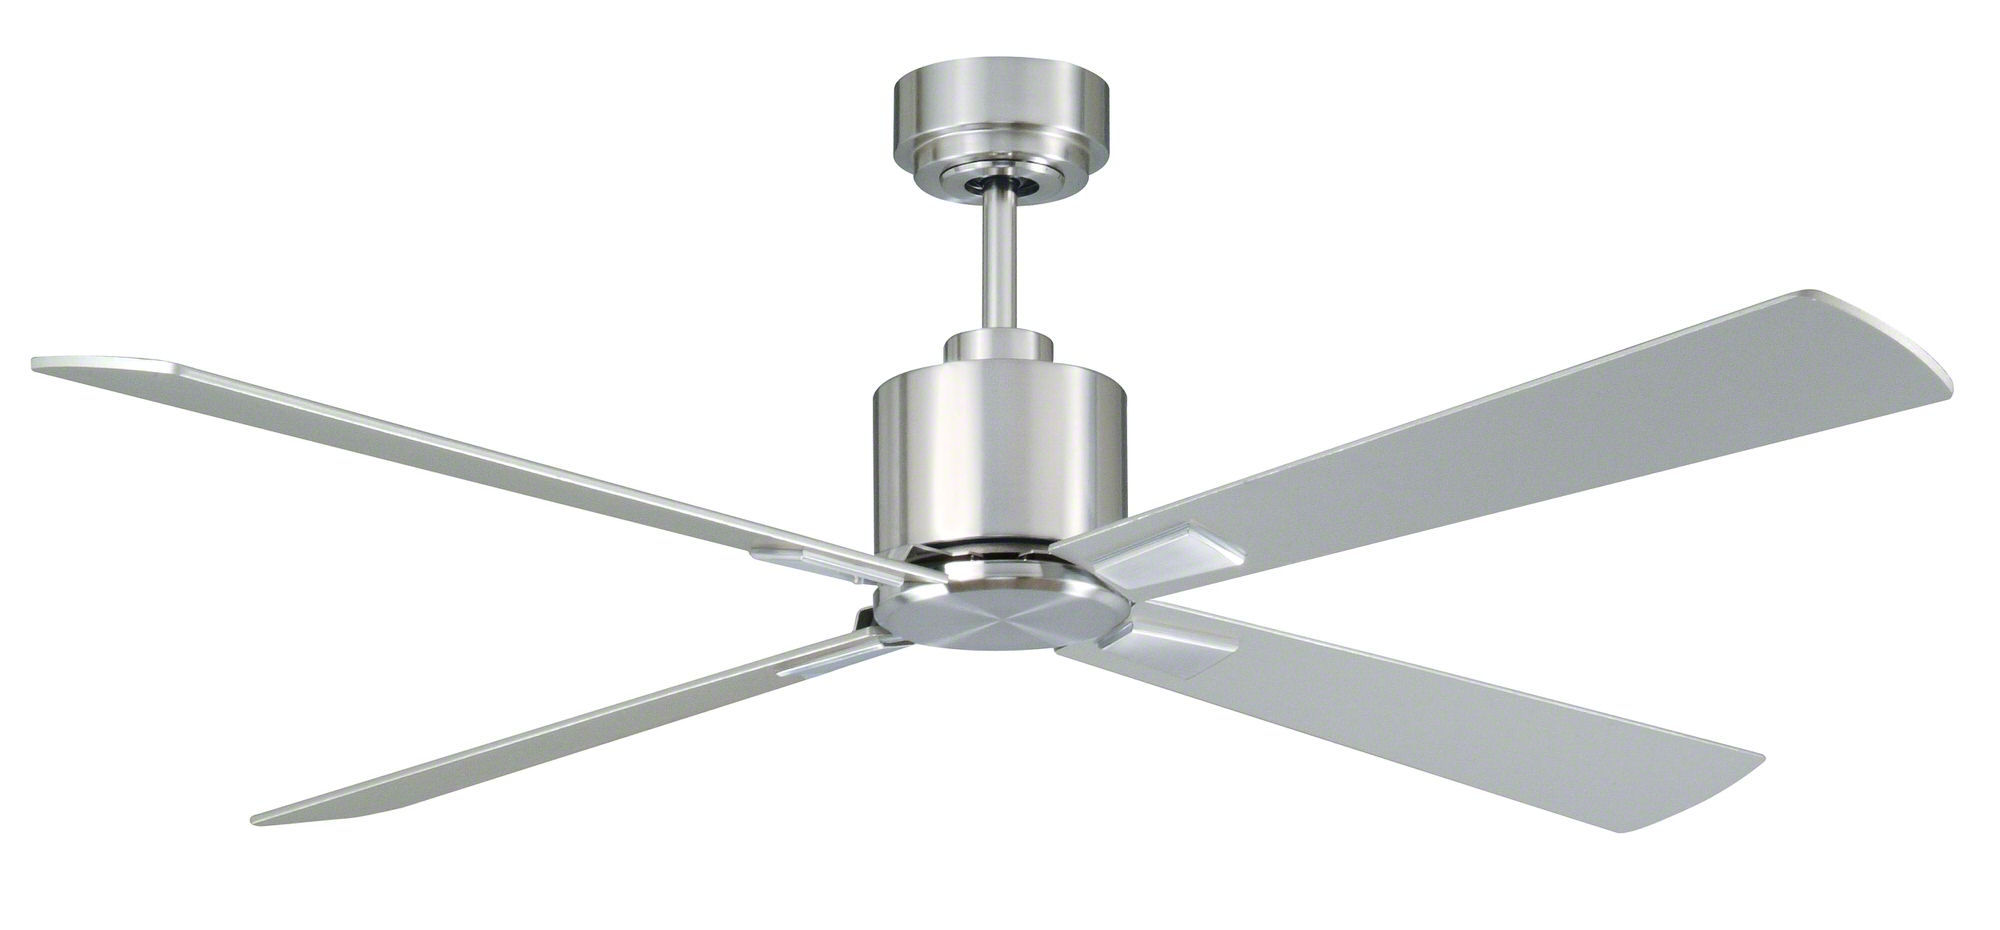 Lucci airfusion climate i ceiling fan mozeypictures Gallery